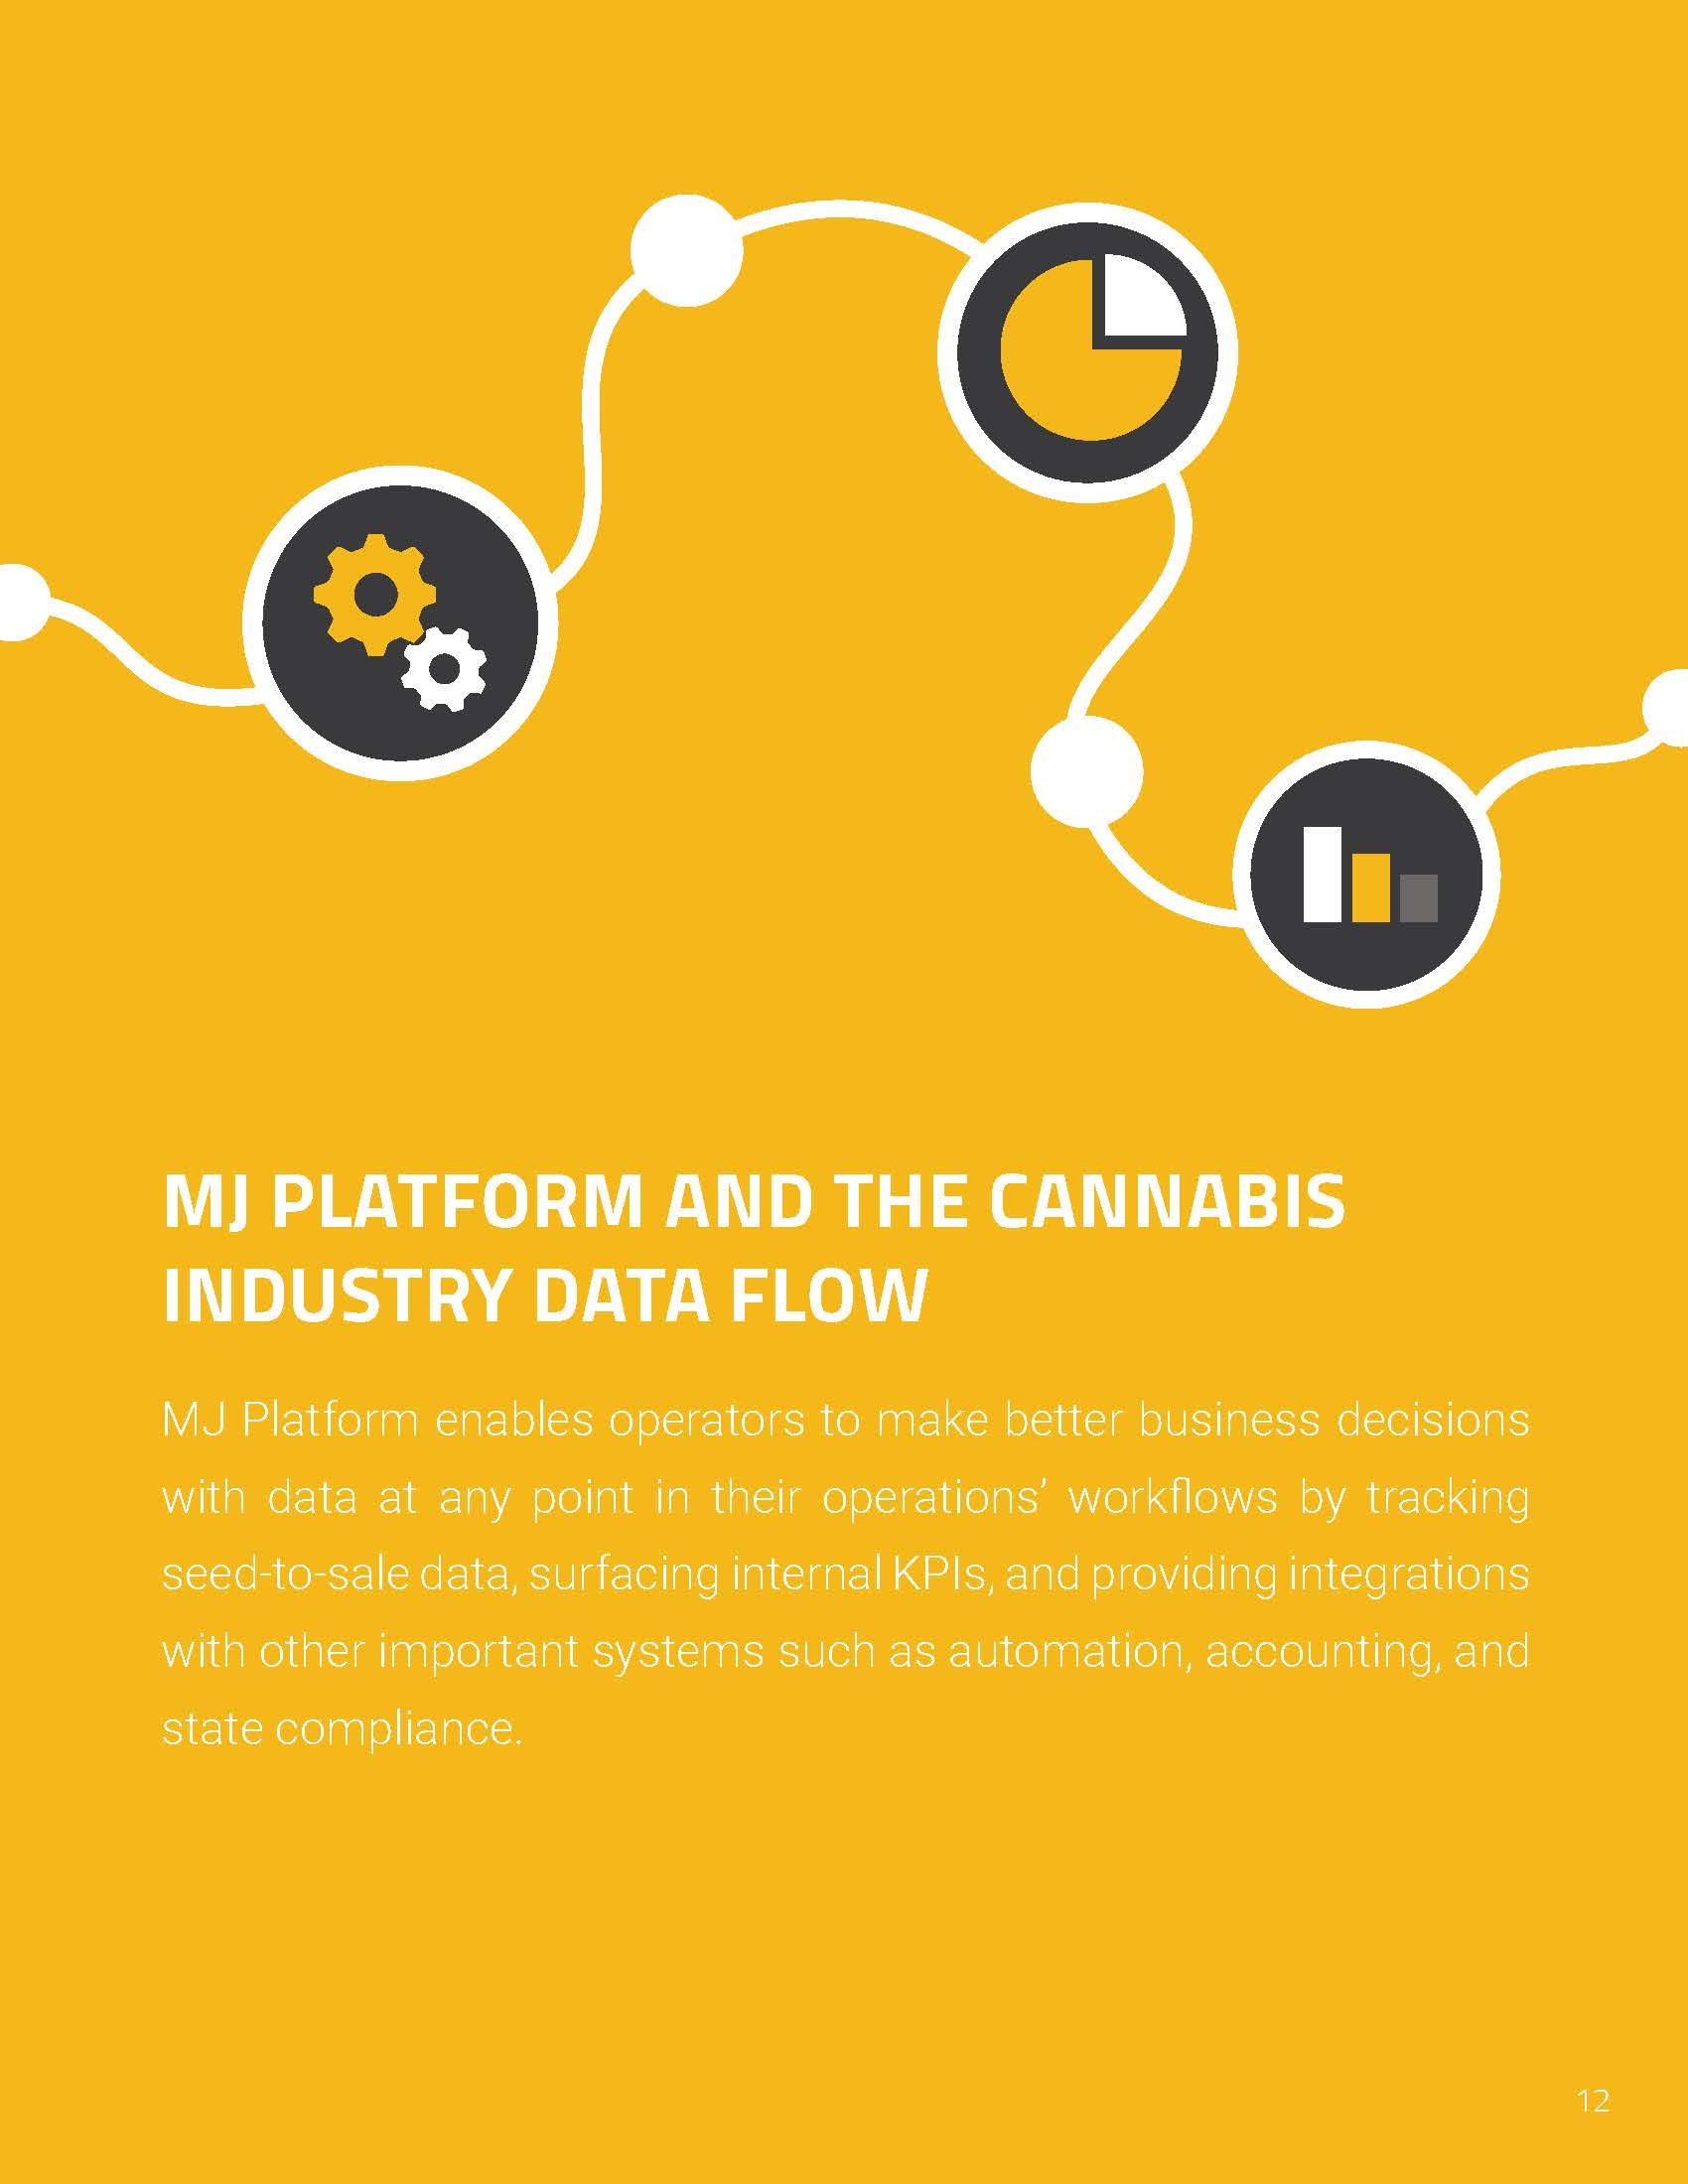 The ability of technology in allowing the flow of data through the full cannabis supply chain becomes of paramount importance in facilitating regulatory compliance in the industry.